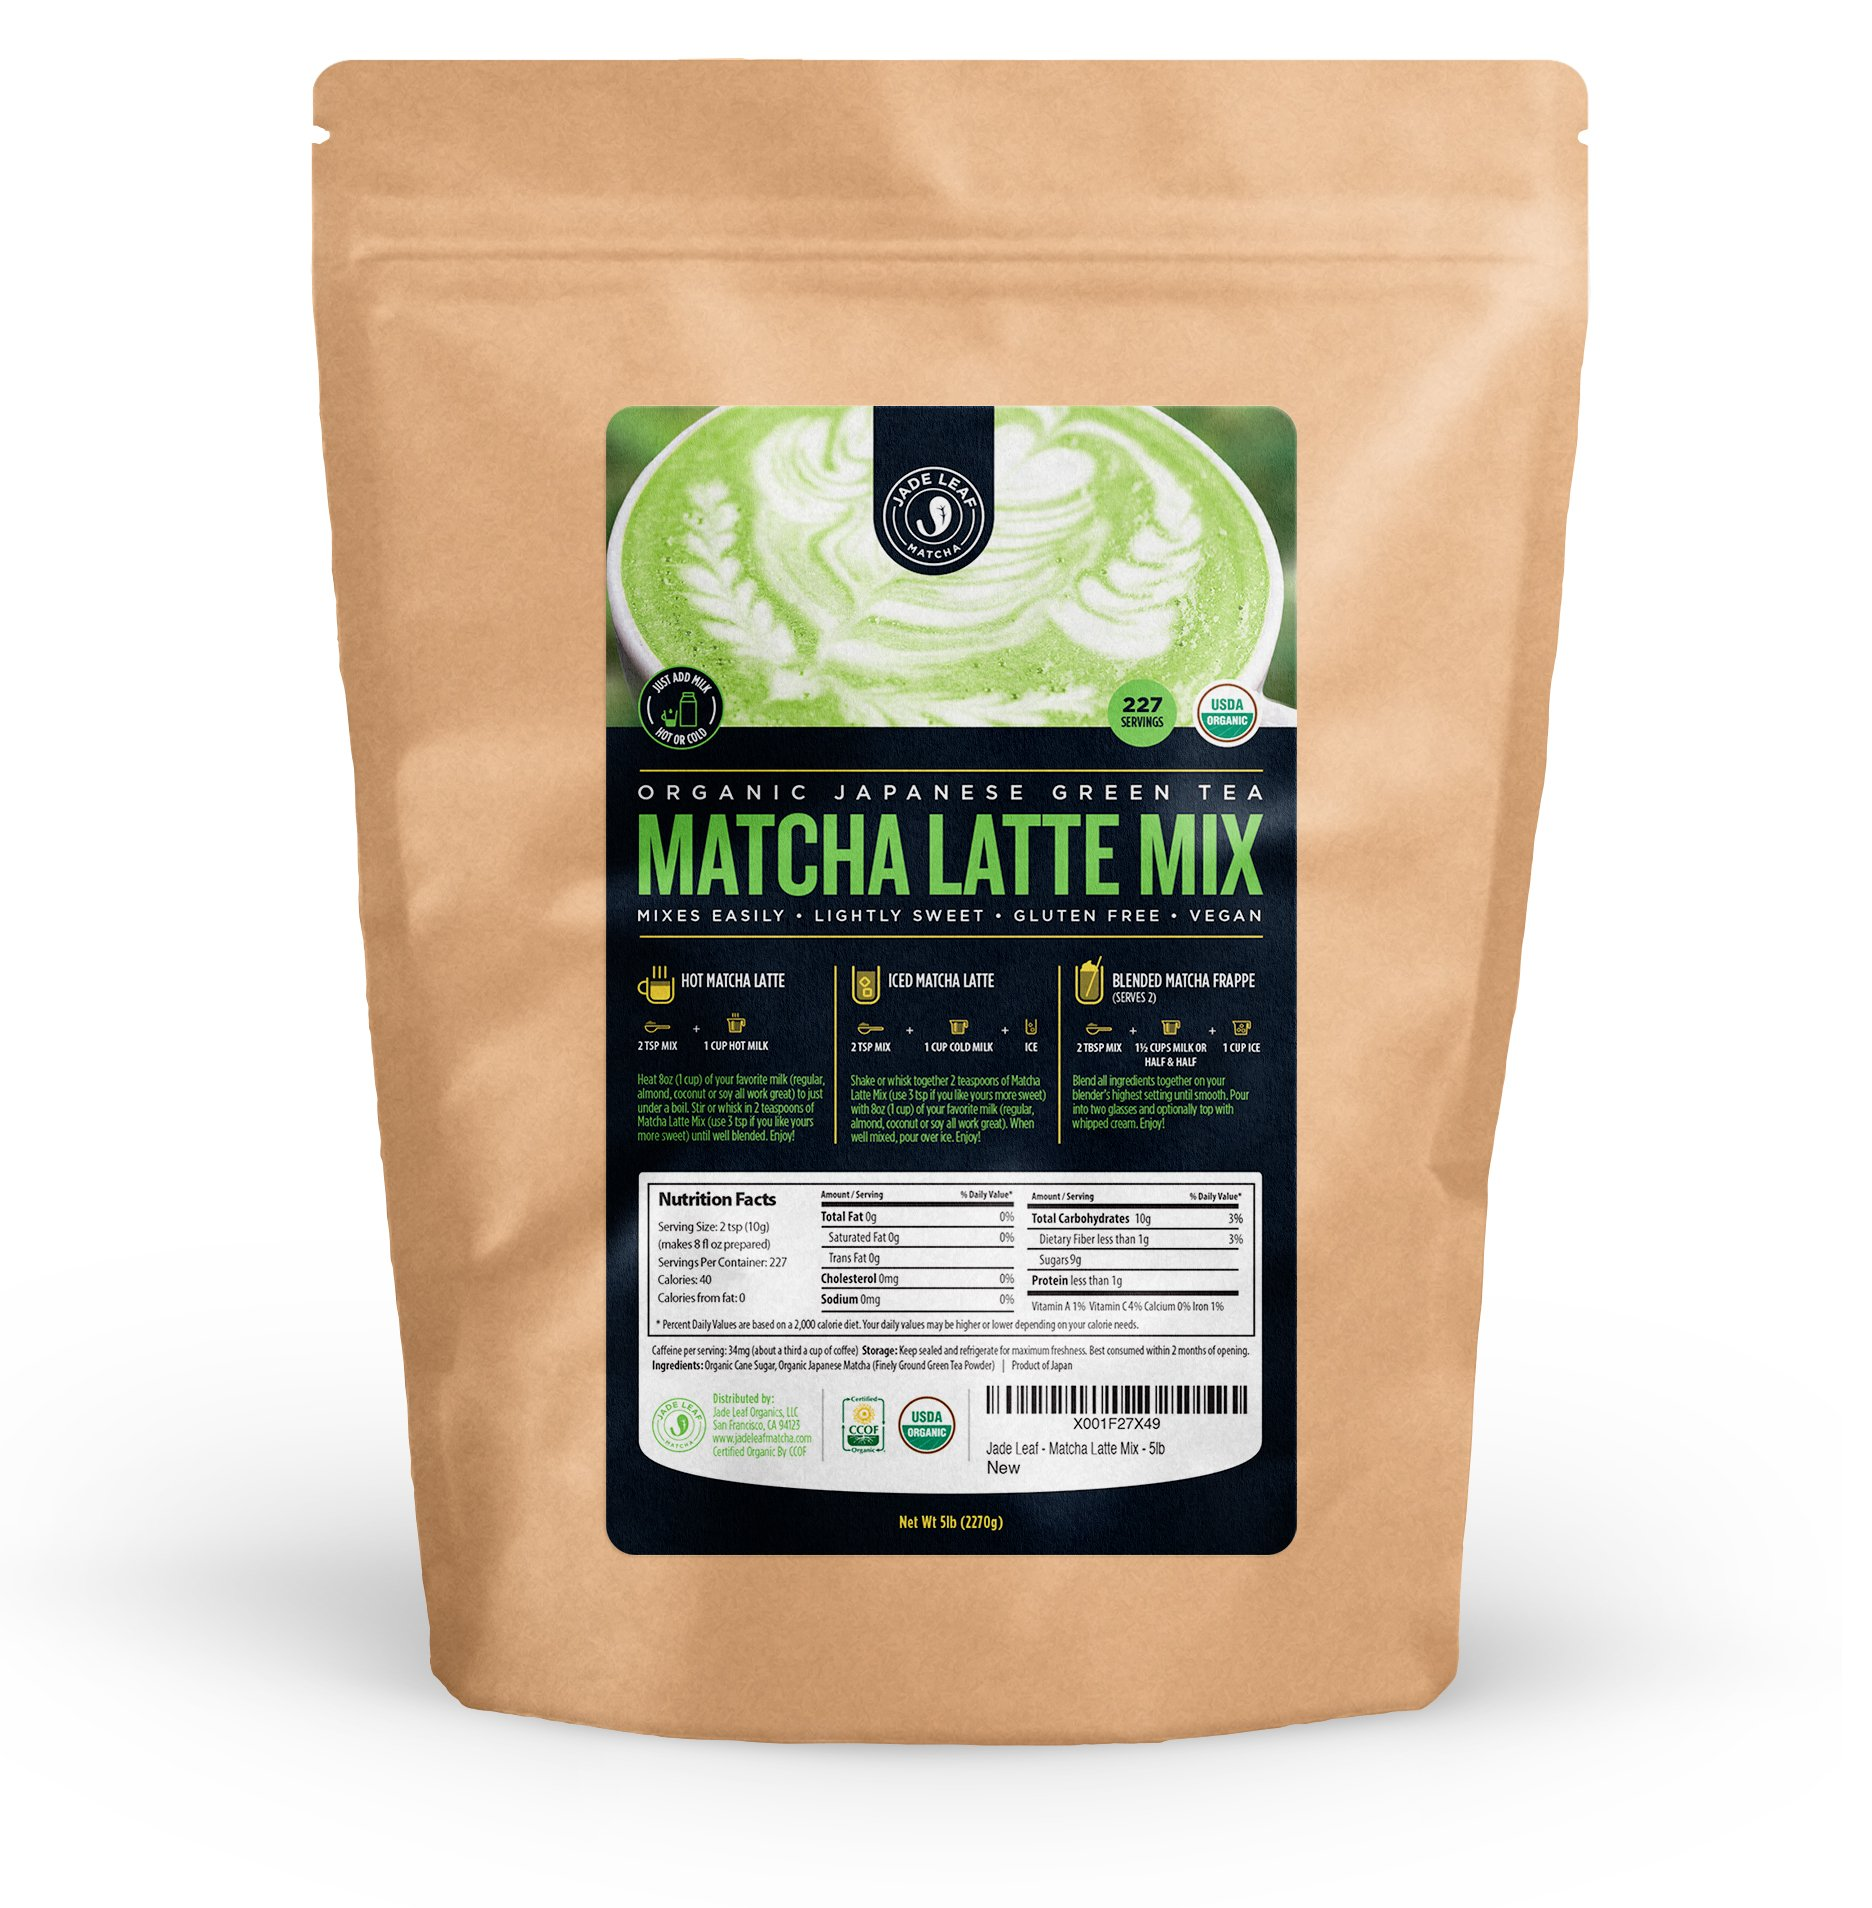 Jade Leaf - Organic Japanese Matcha Latte Mix - Make Delicious Matcha Green Tea Powder Lattes at Home [5lb Bulk Size] by Jade Leaf Organics